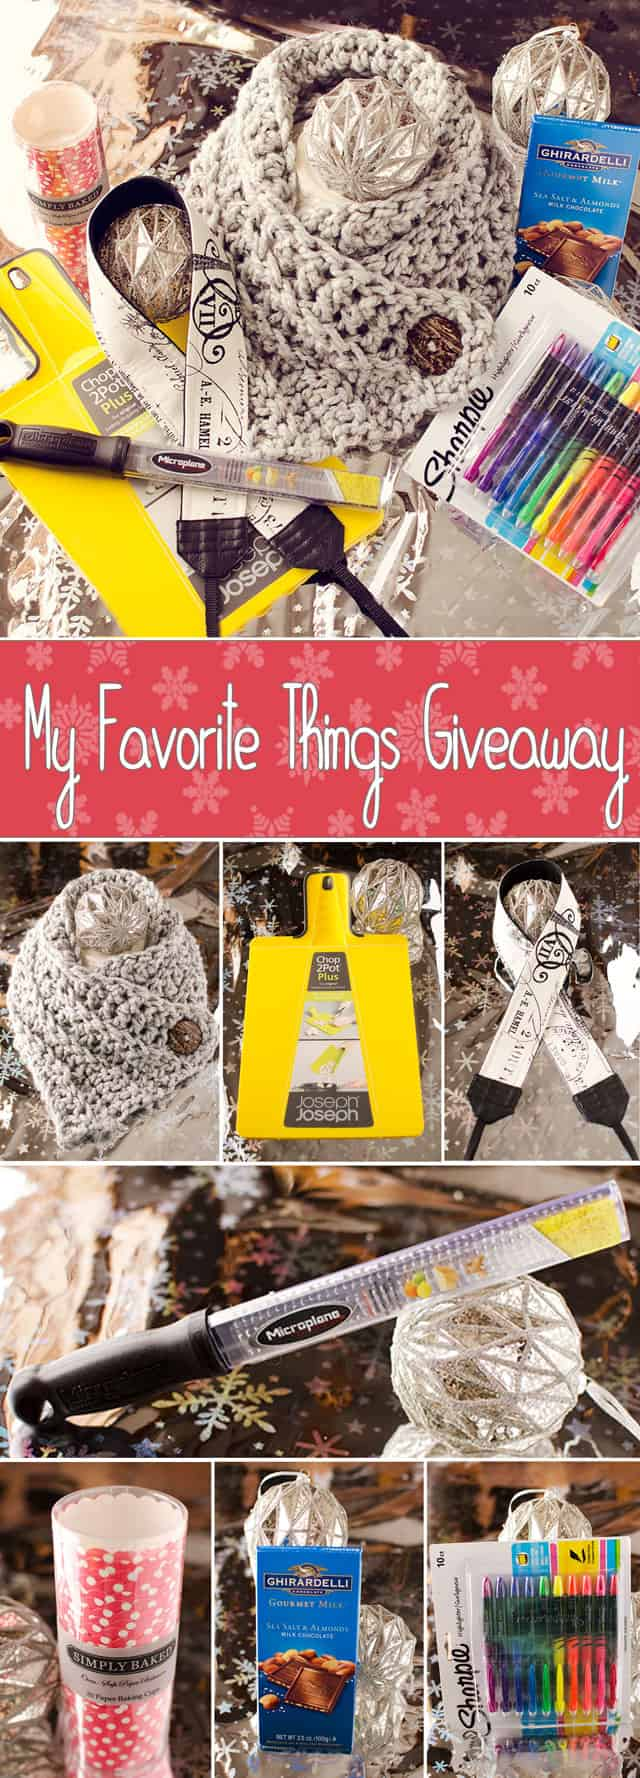 My Favorite Things Giveaway 2014 - Krafted Koch